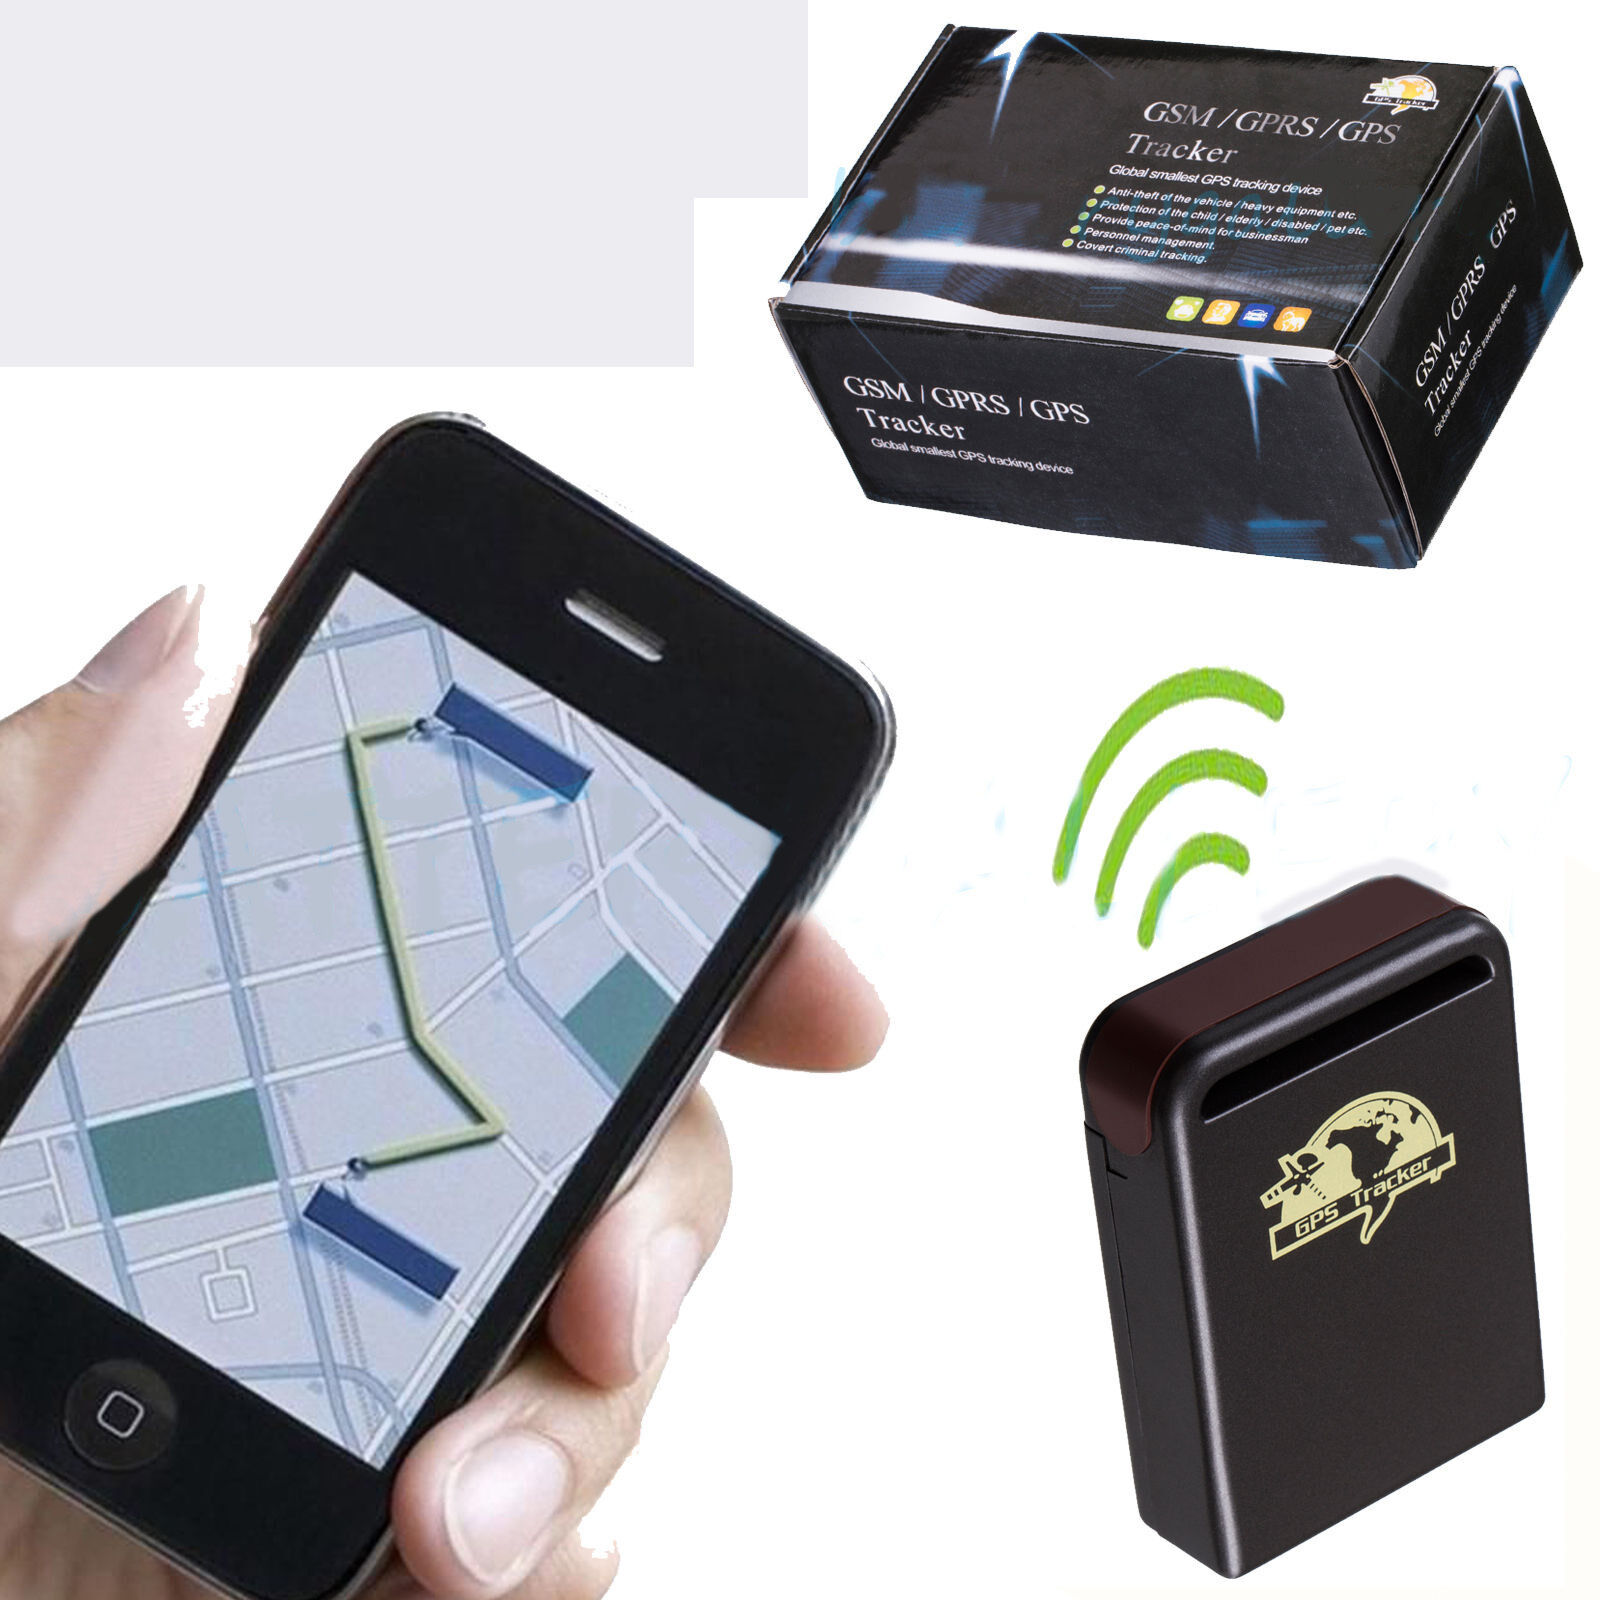 Gps Tracking Device For Car >> RealTime GPS Tracker GSM GPRS System Vehicle Tracking ...